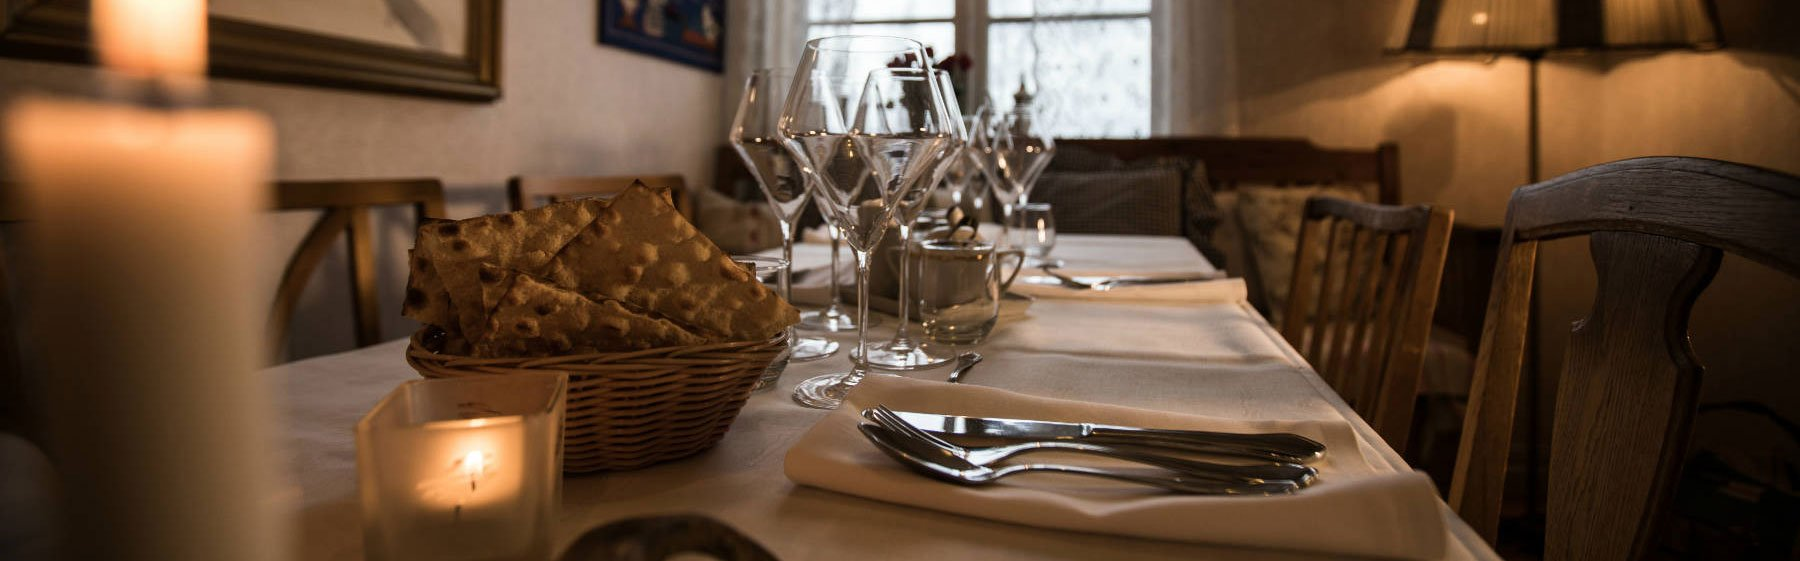 brittas-guesthouse-dining-room